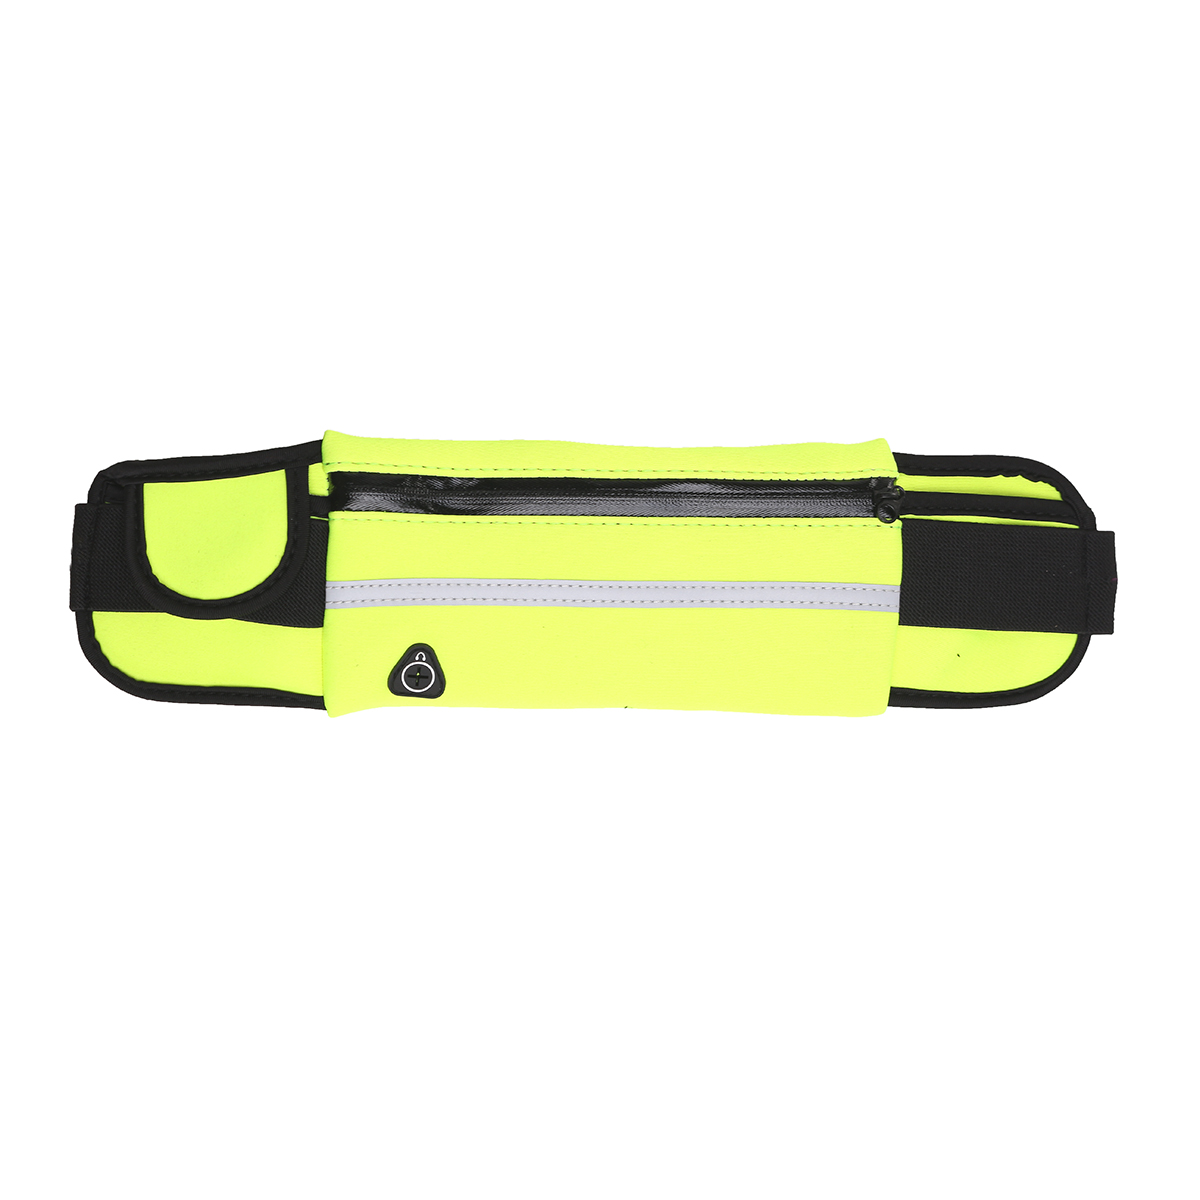 Unisex Waist Belt Bag Sport Fitness Running Jogging Marathon Gym Adjustable Waist Accessories